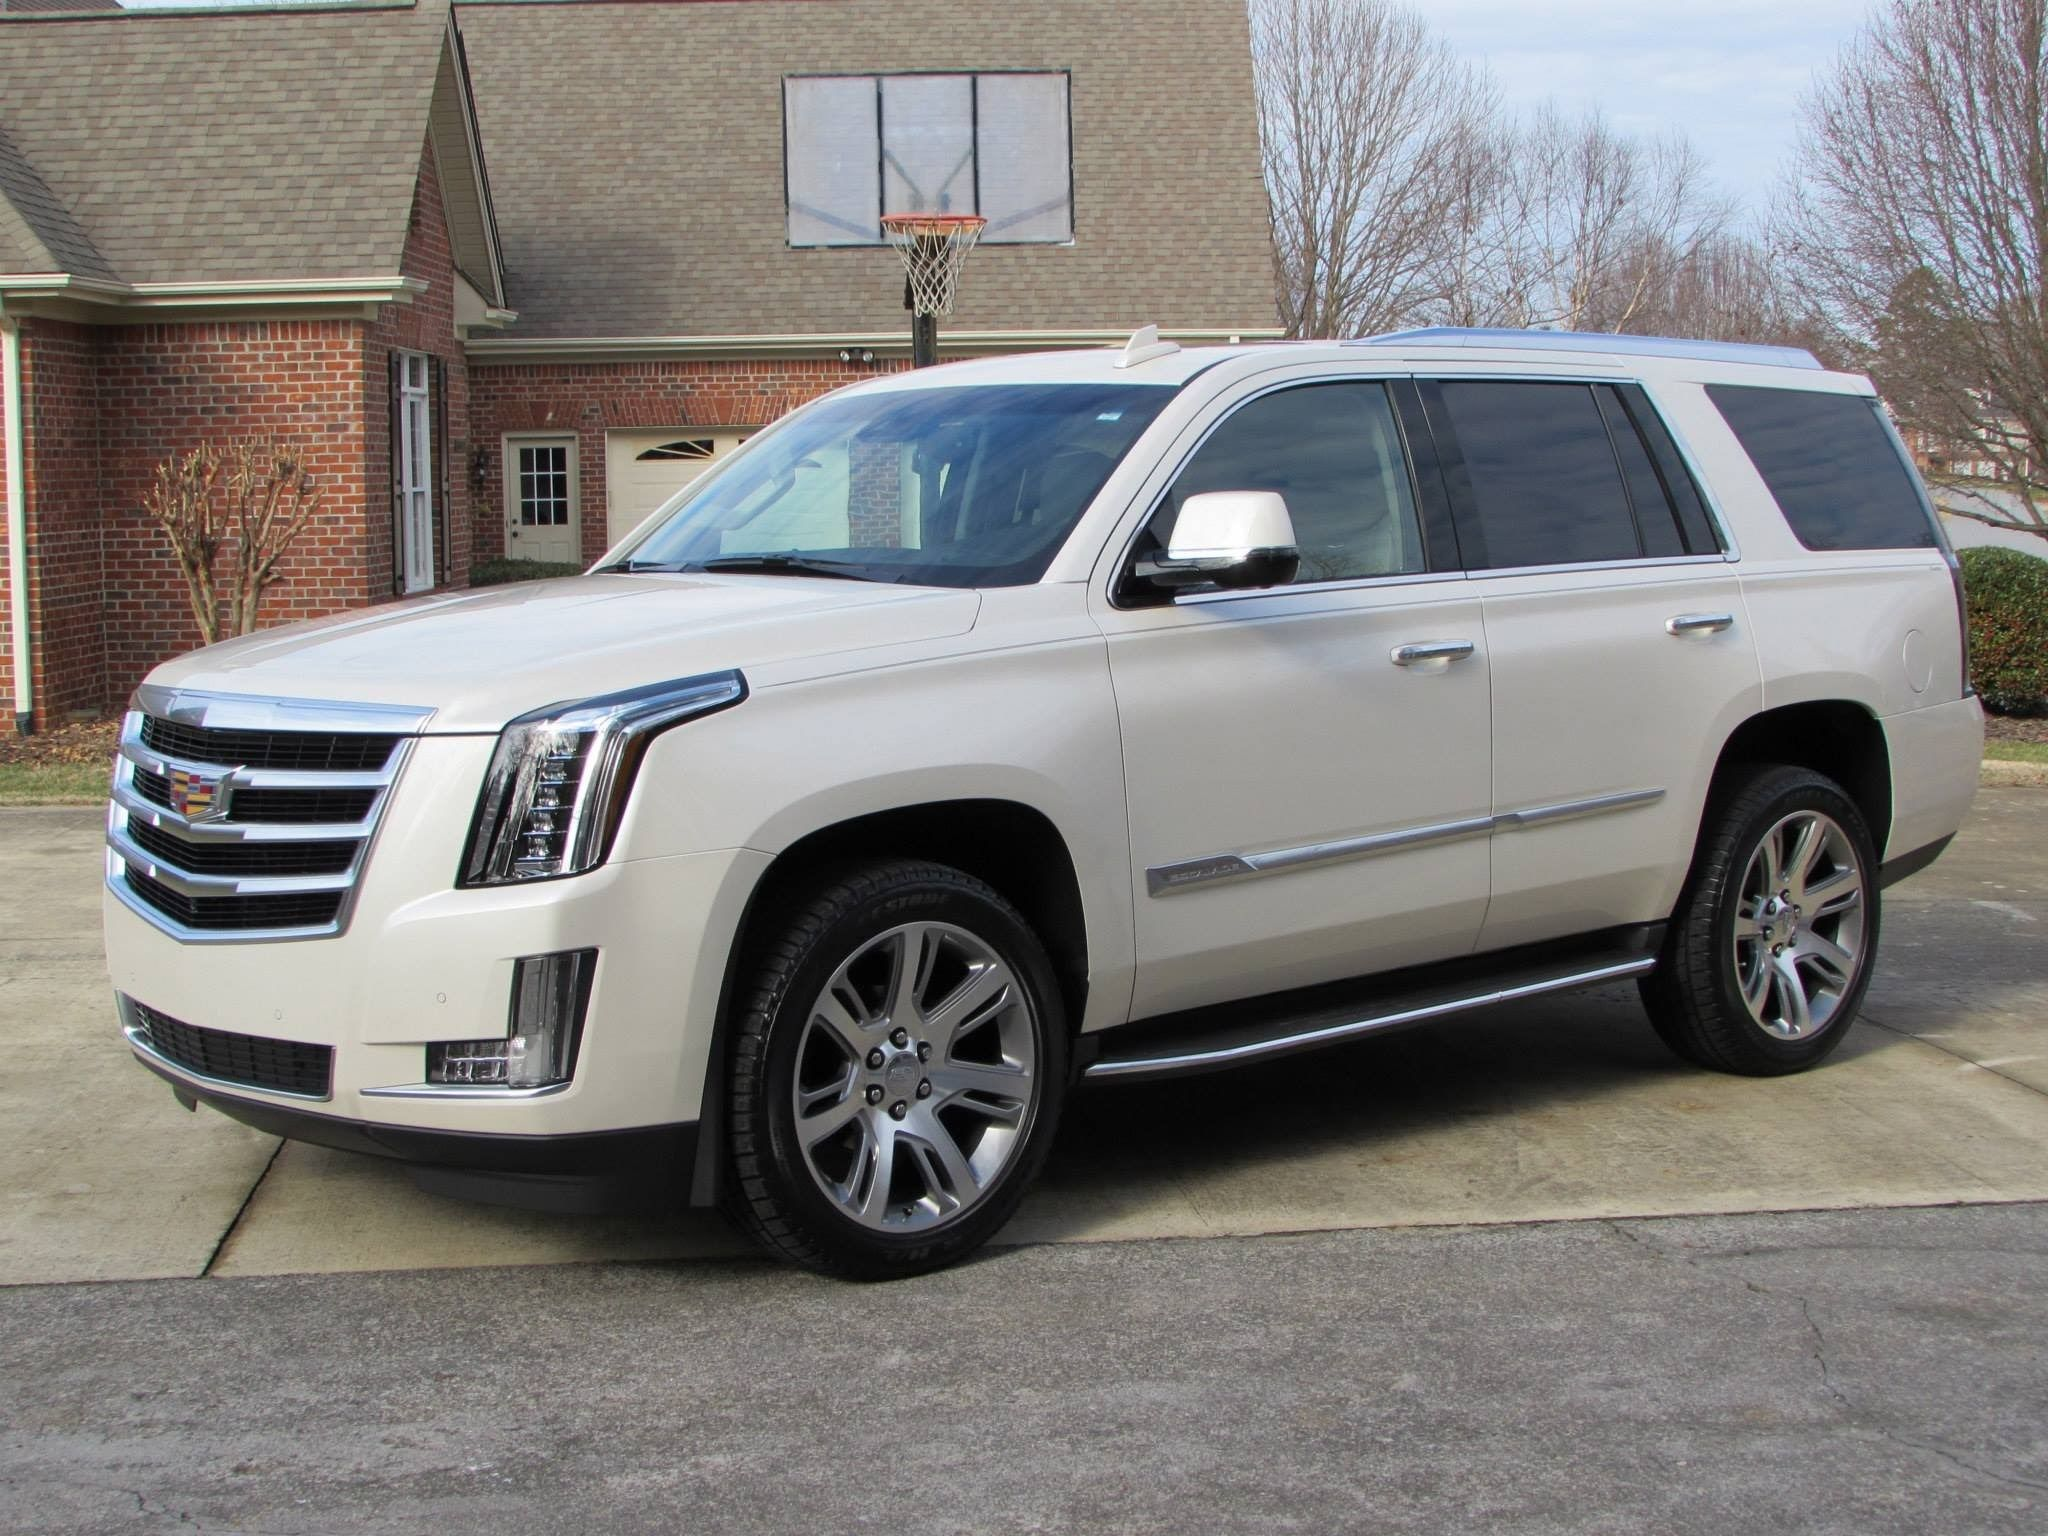 Cadillac escalade platinum wallpaper ololoshenka pinterest cadillac escalade cadillac and wallpapers